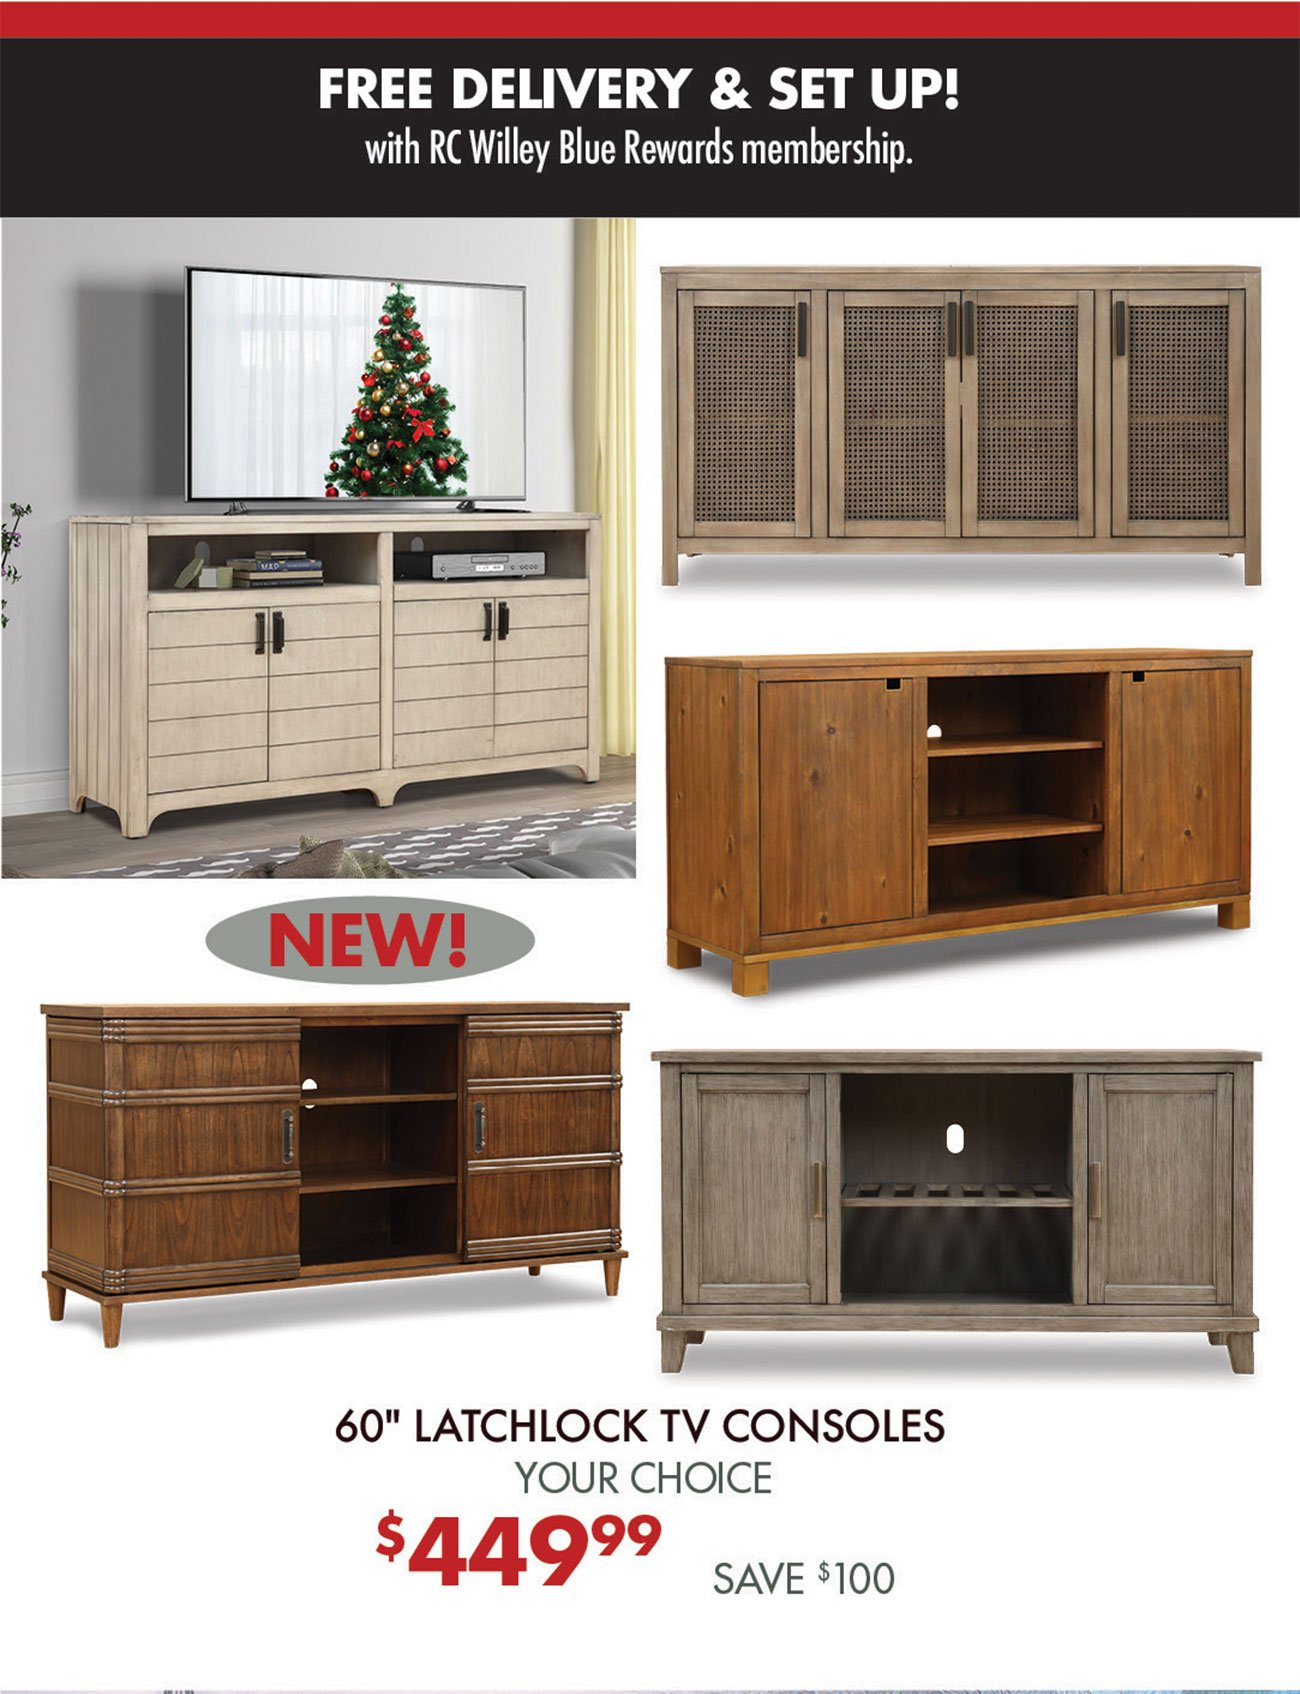 Latchlock-TV-Consoles-Your-Choice